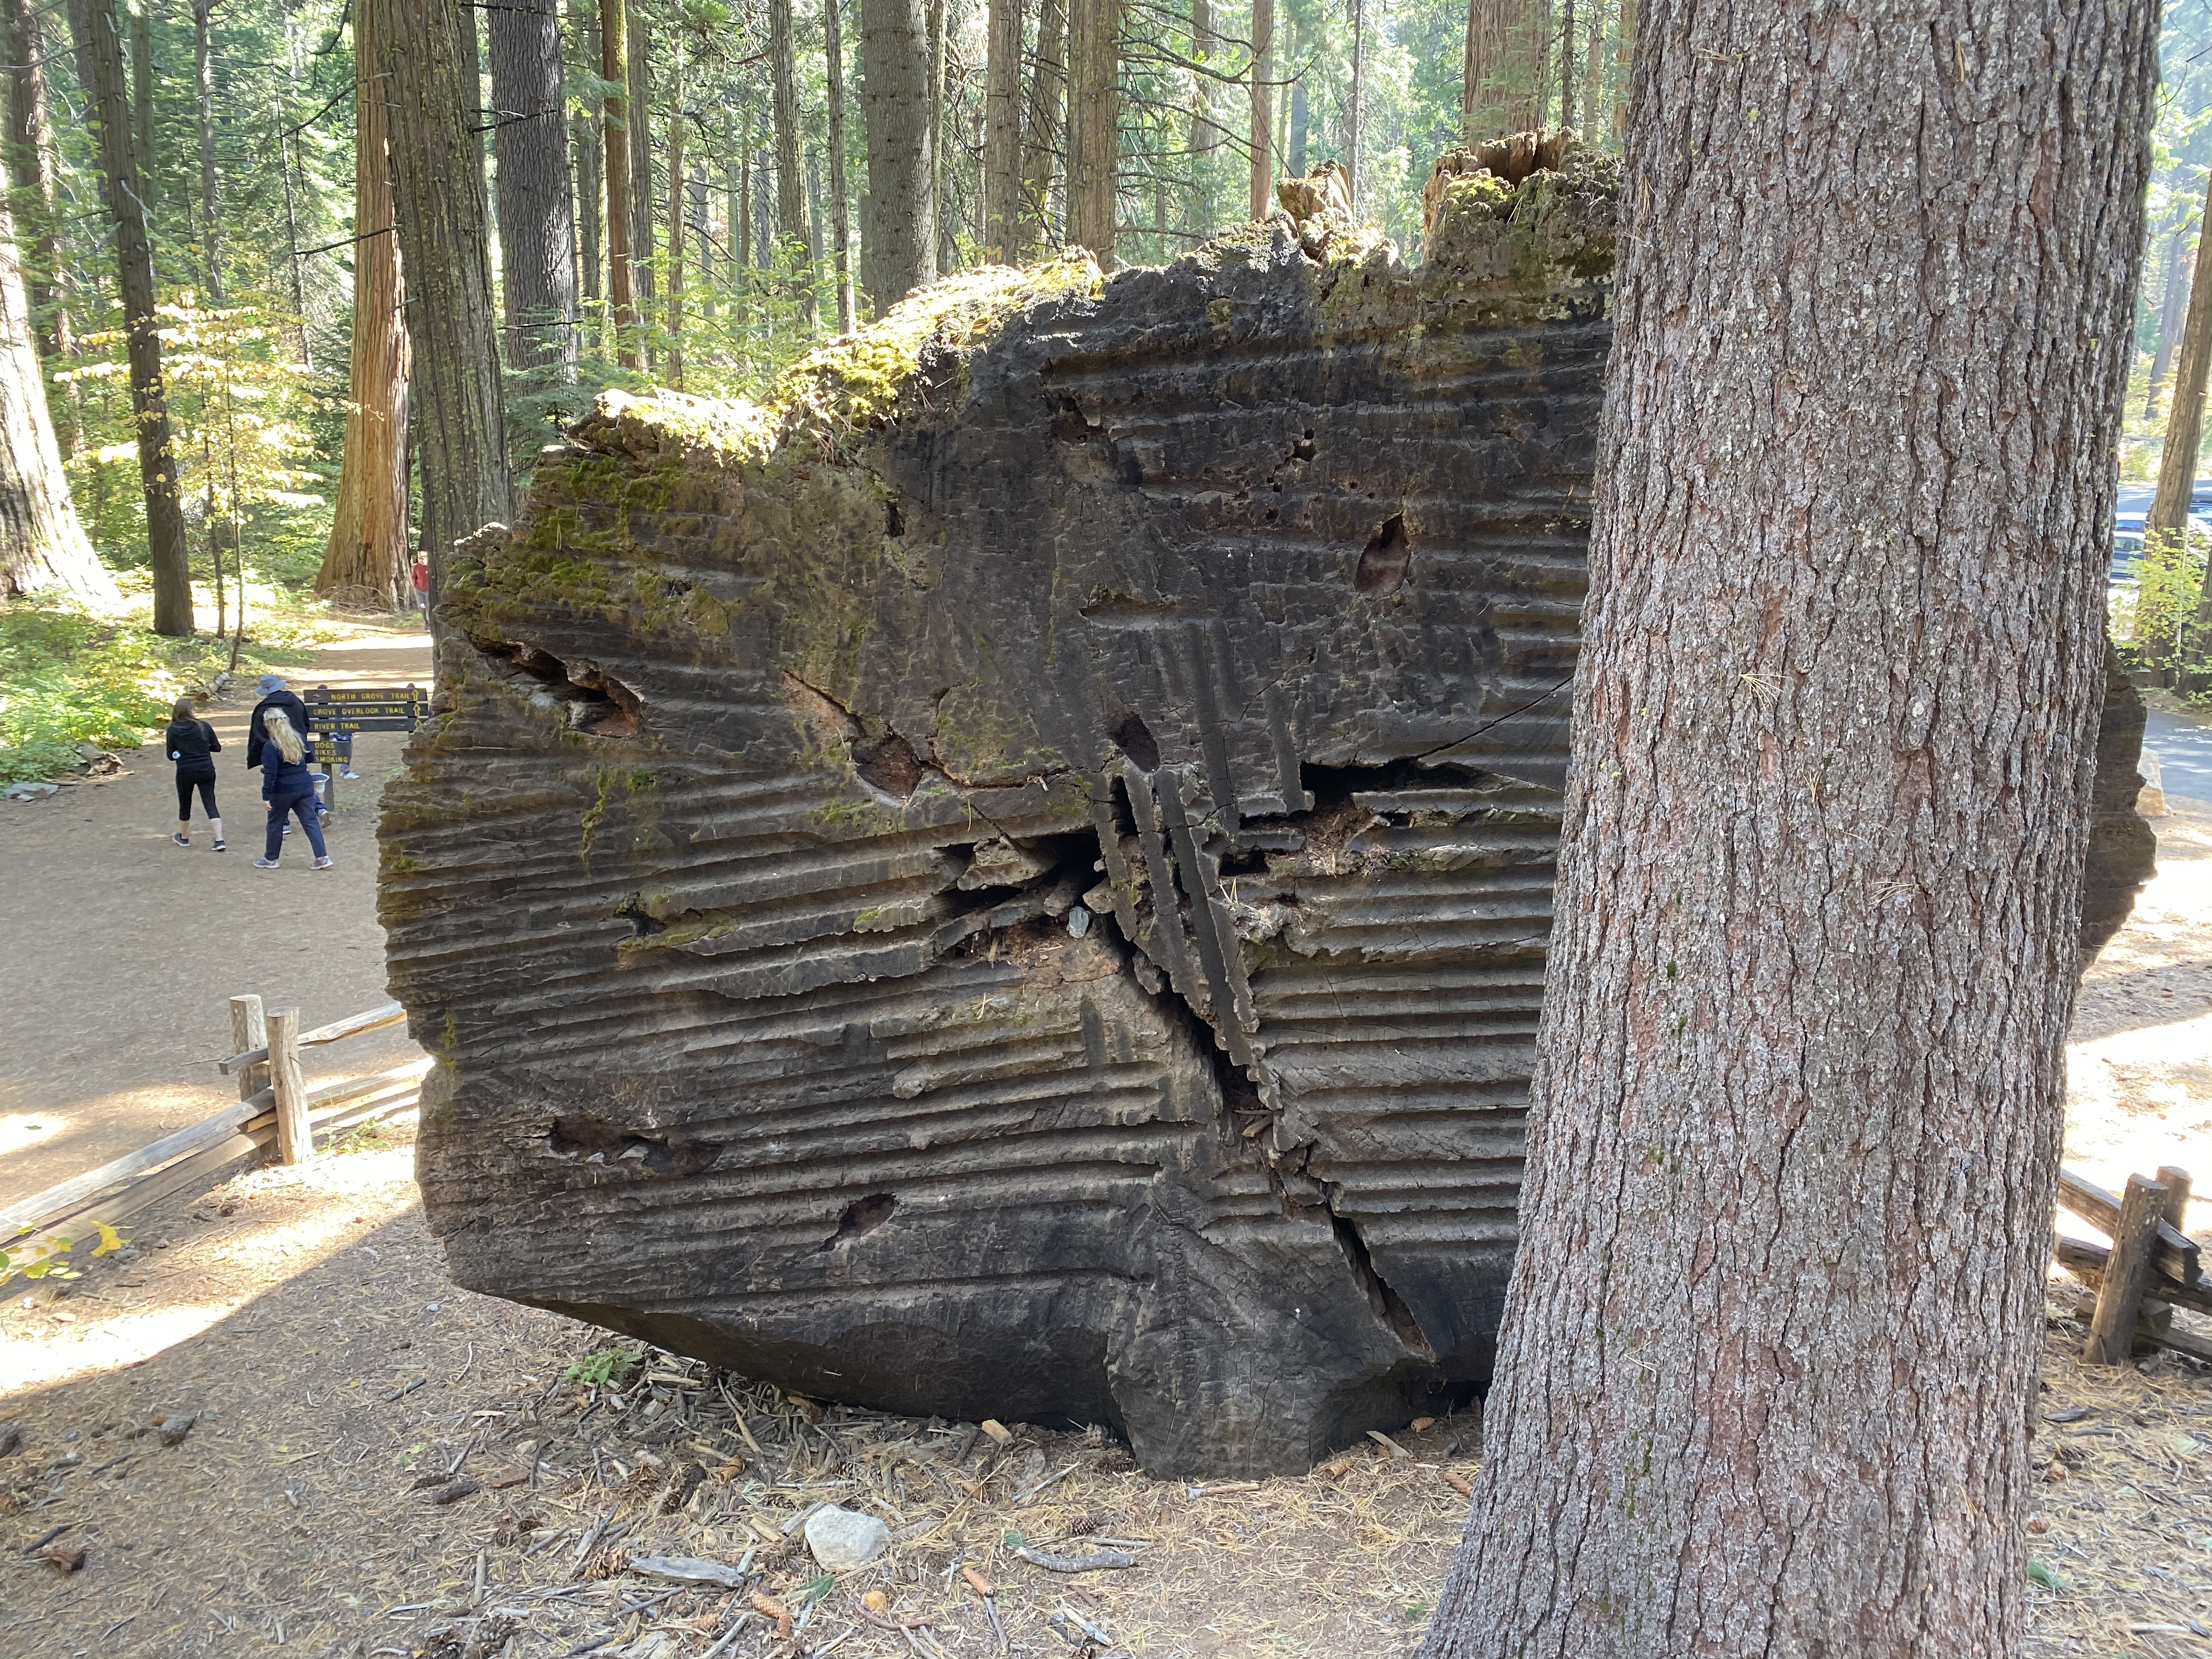 The trunk of a cut-down Sequoia.